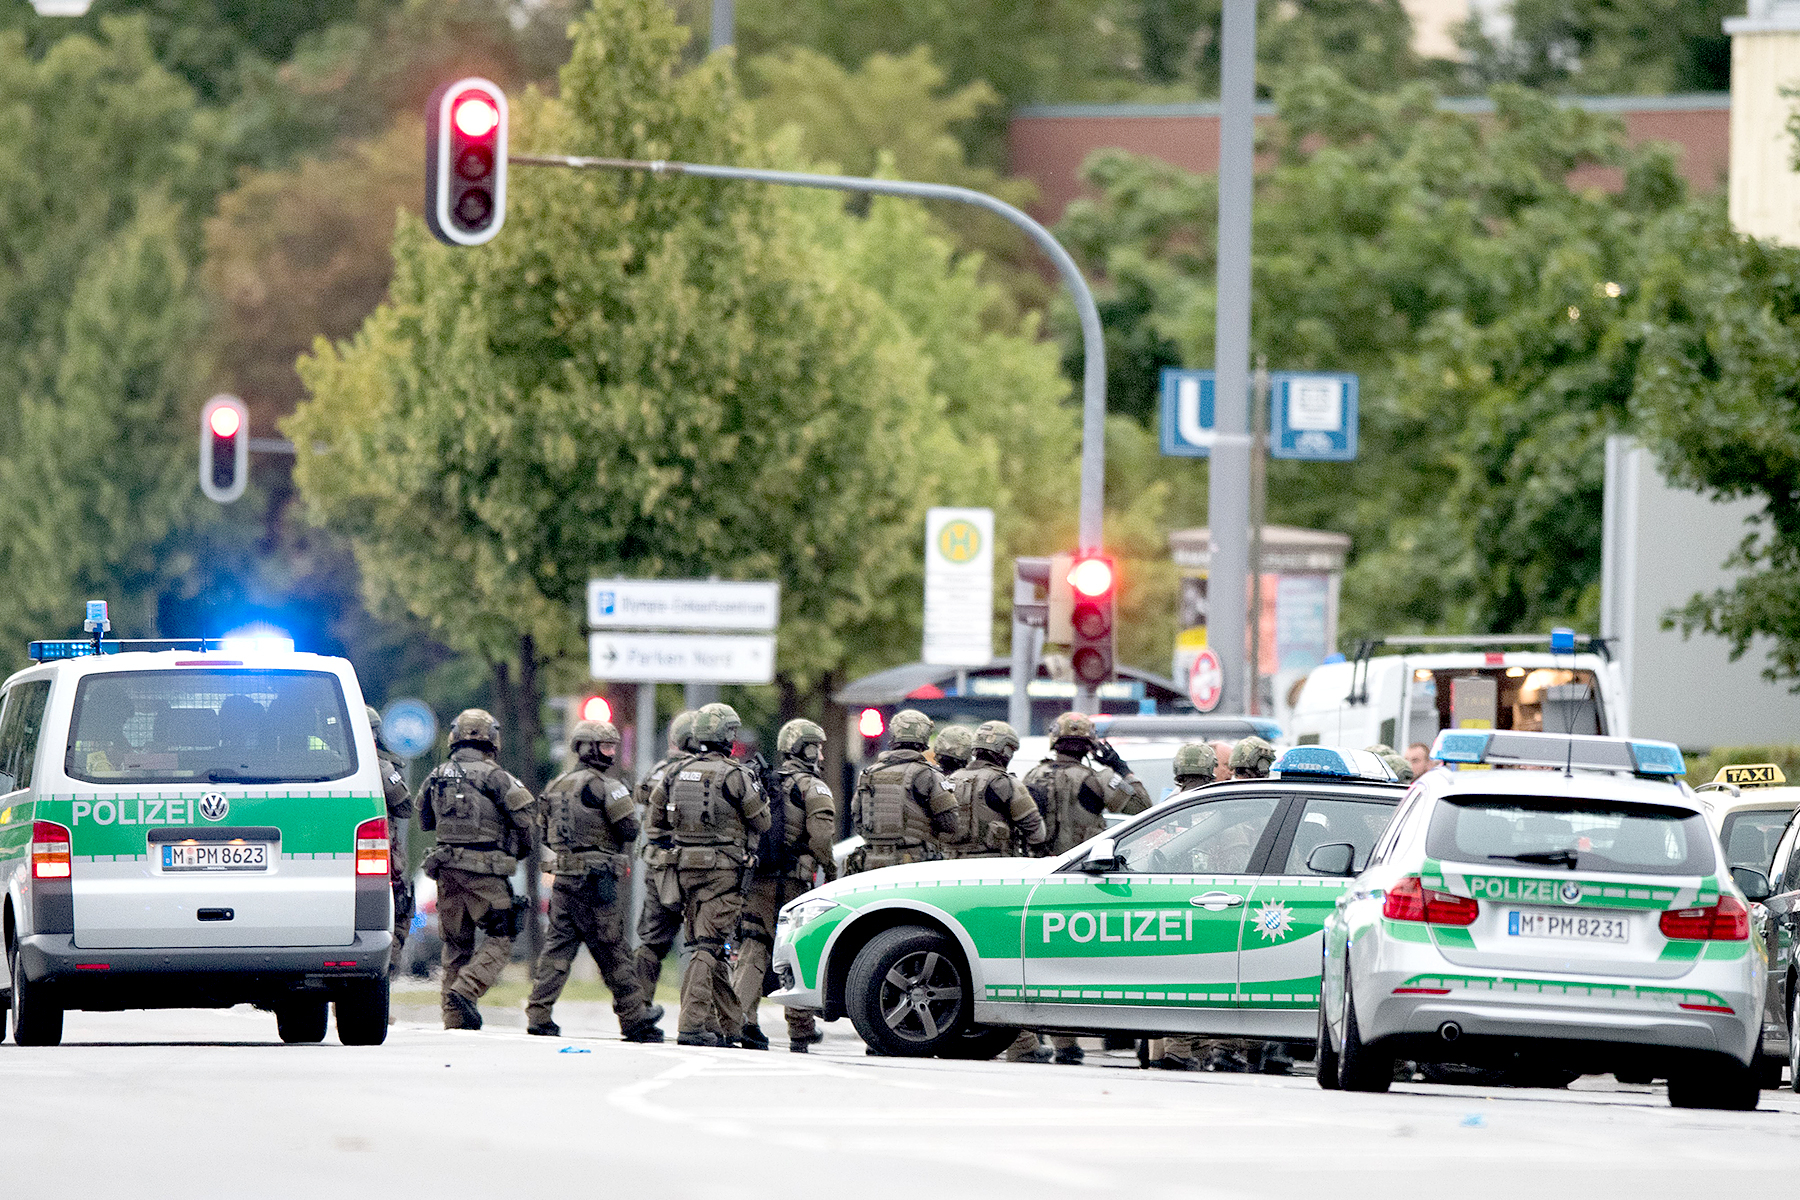 Special forces enter the shopping mall where shots were fired in Munich, Germany on July 22, 2016.